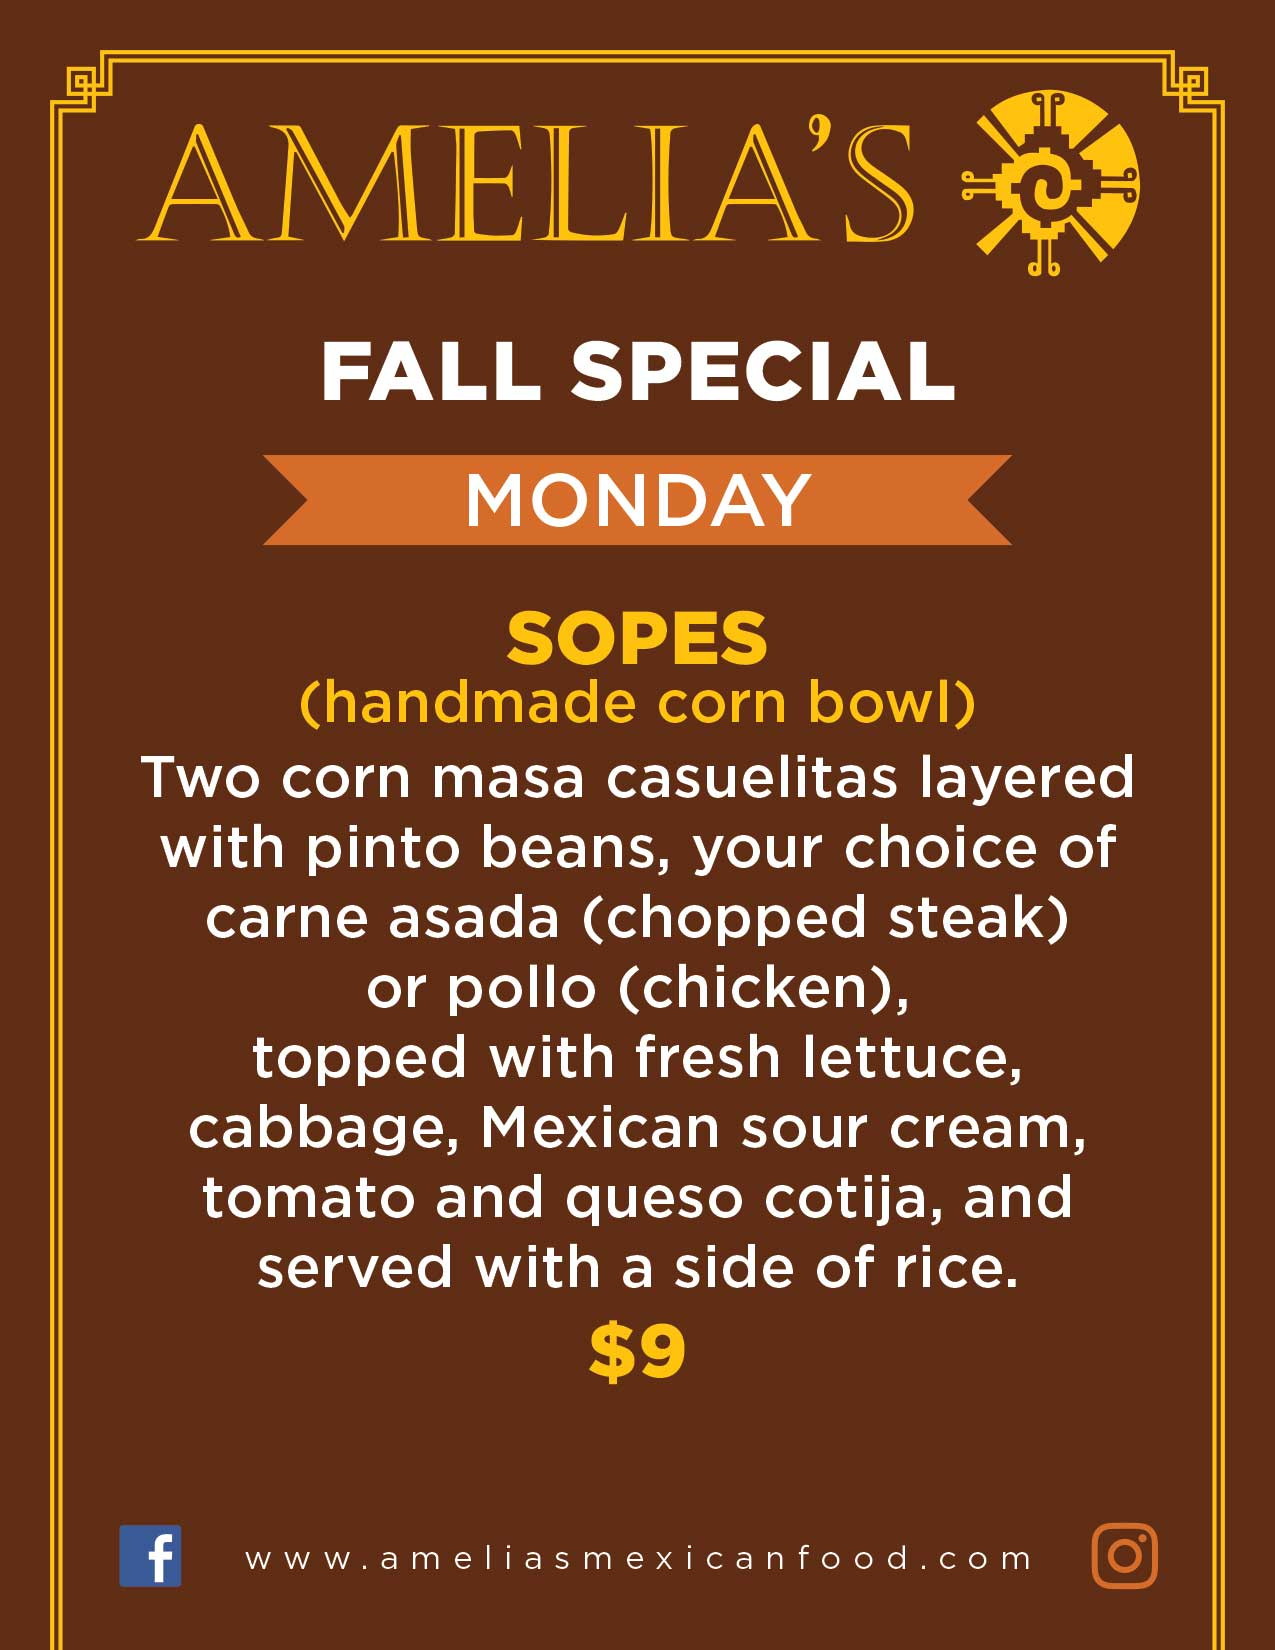 image of Monday specials